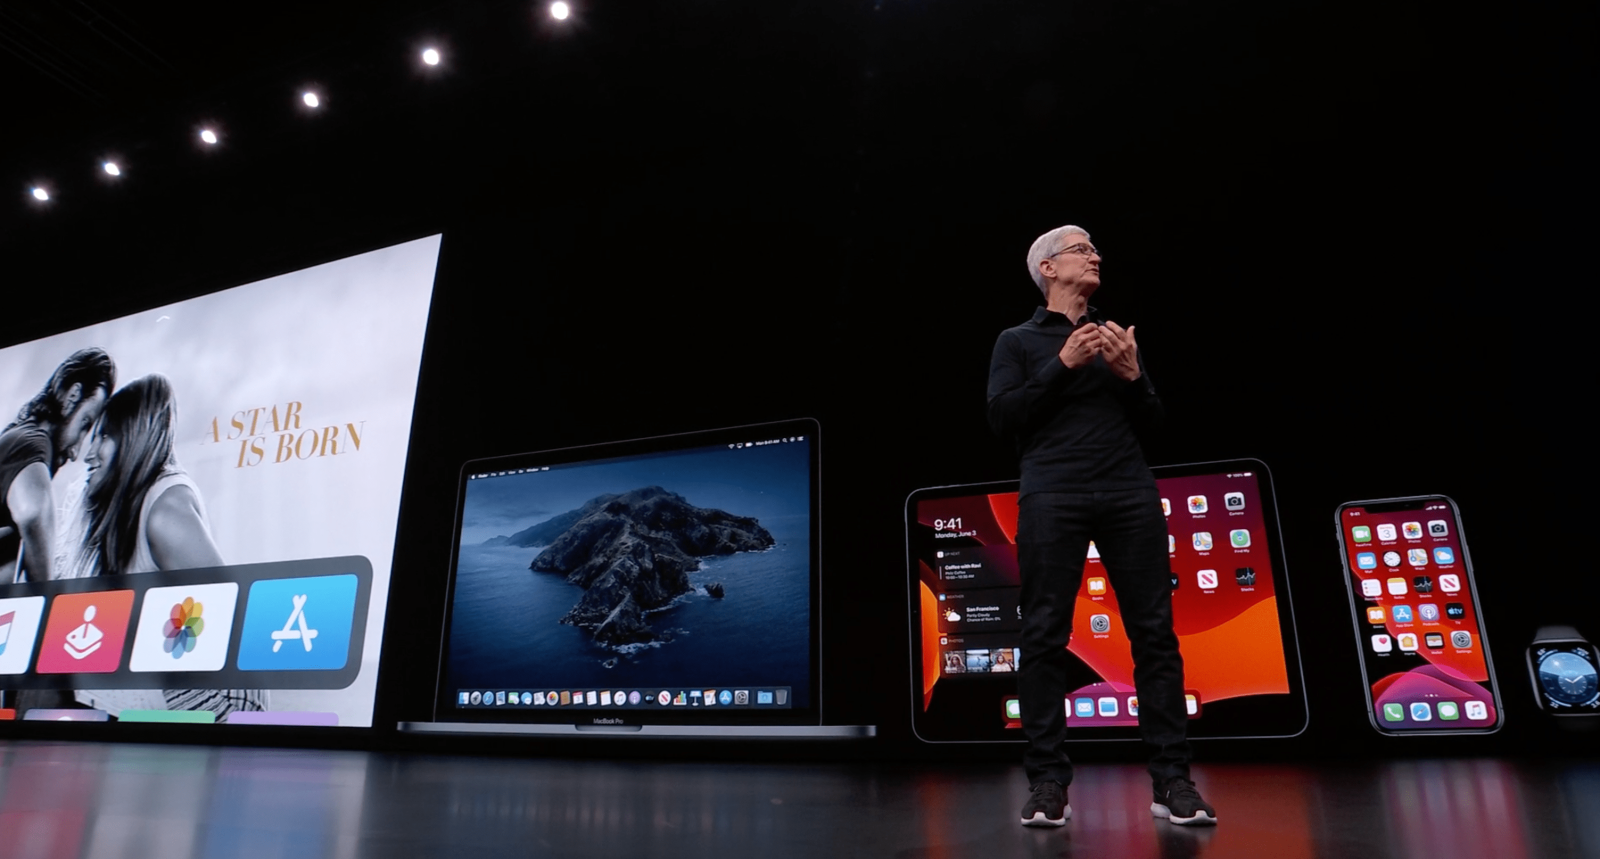 What was your favorite WWDC 2019 announcement? [Poll]